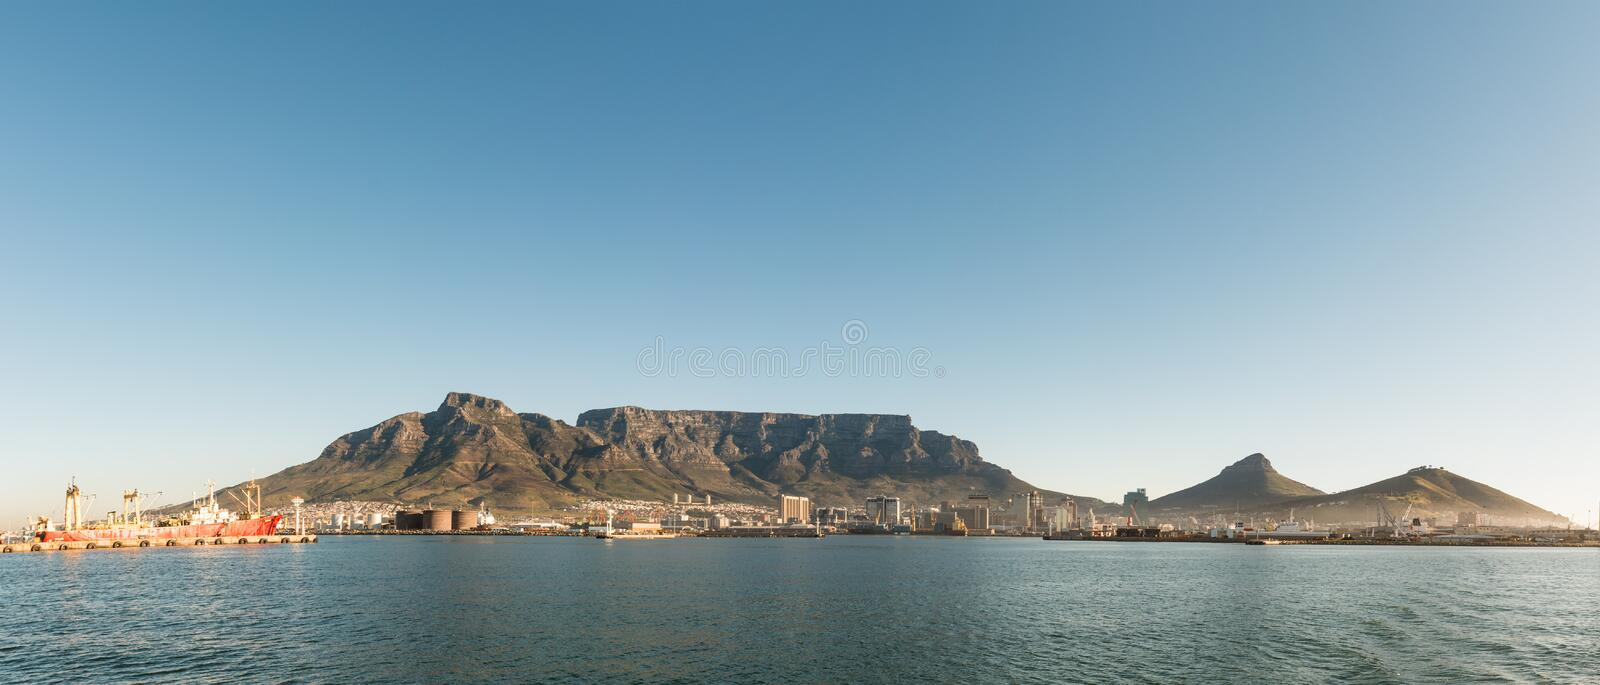 Cape Town & x28;view from the seaside& x29; royalty free stock photography